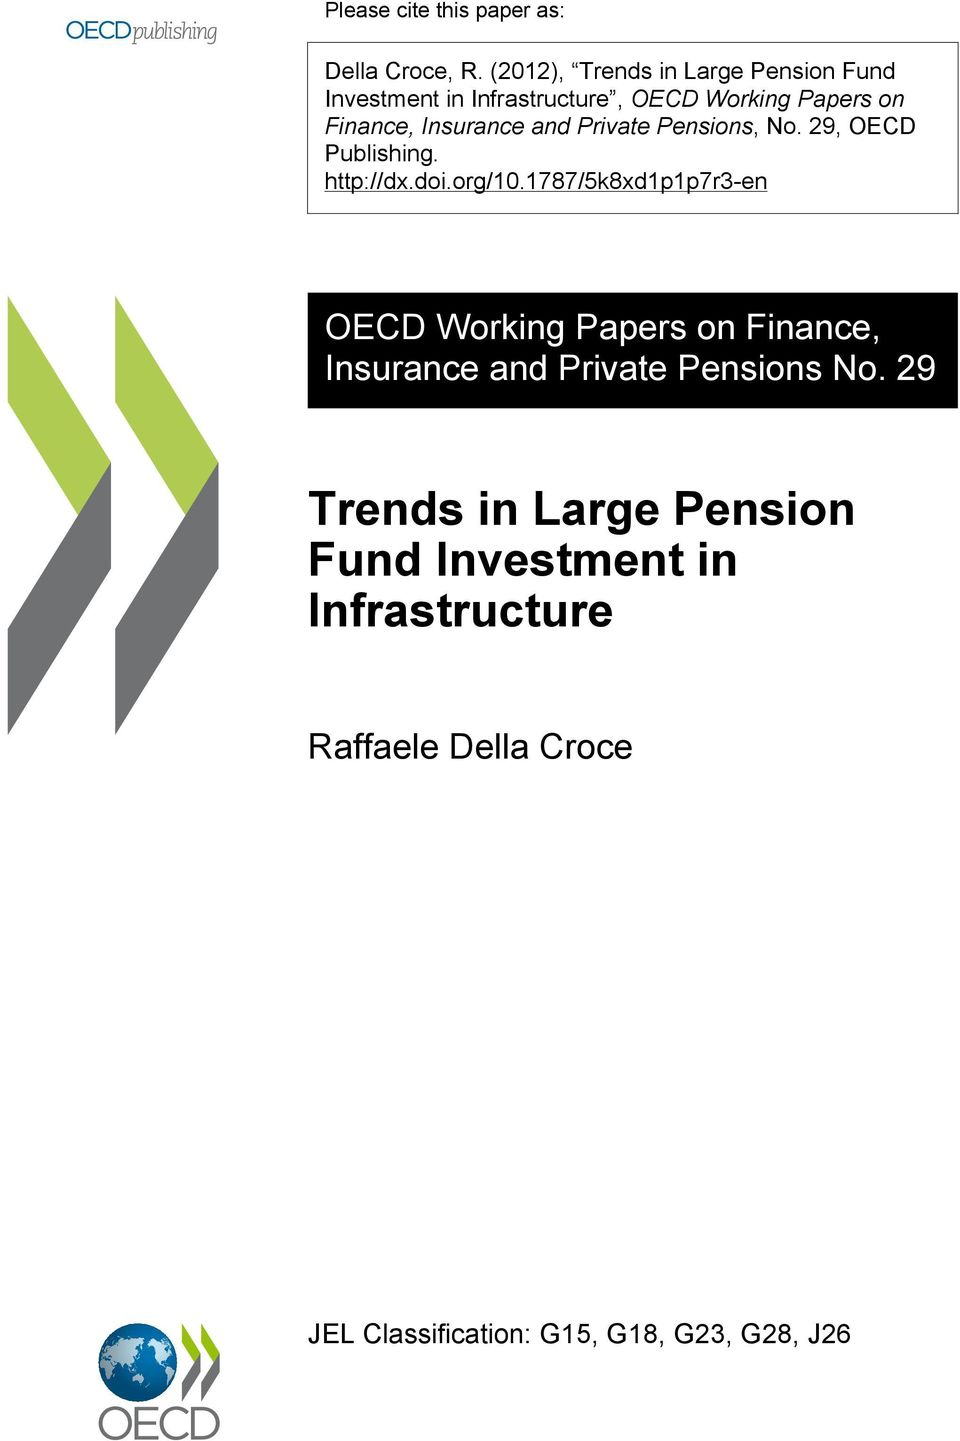 and Private Pensions, No. 29, OECD Publishing. http://dx.doi.org/10.